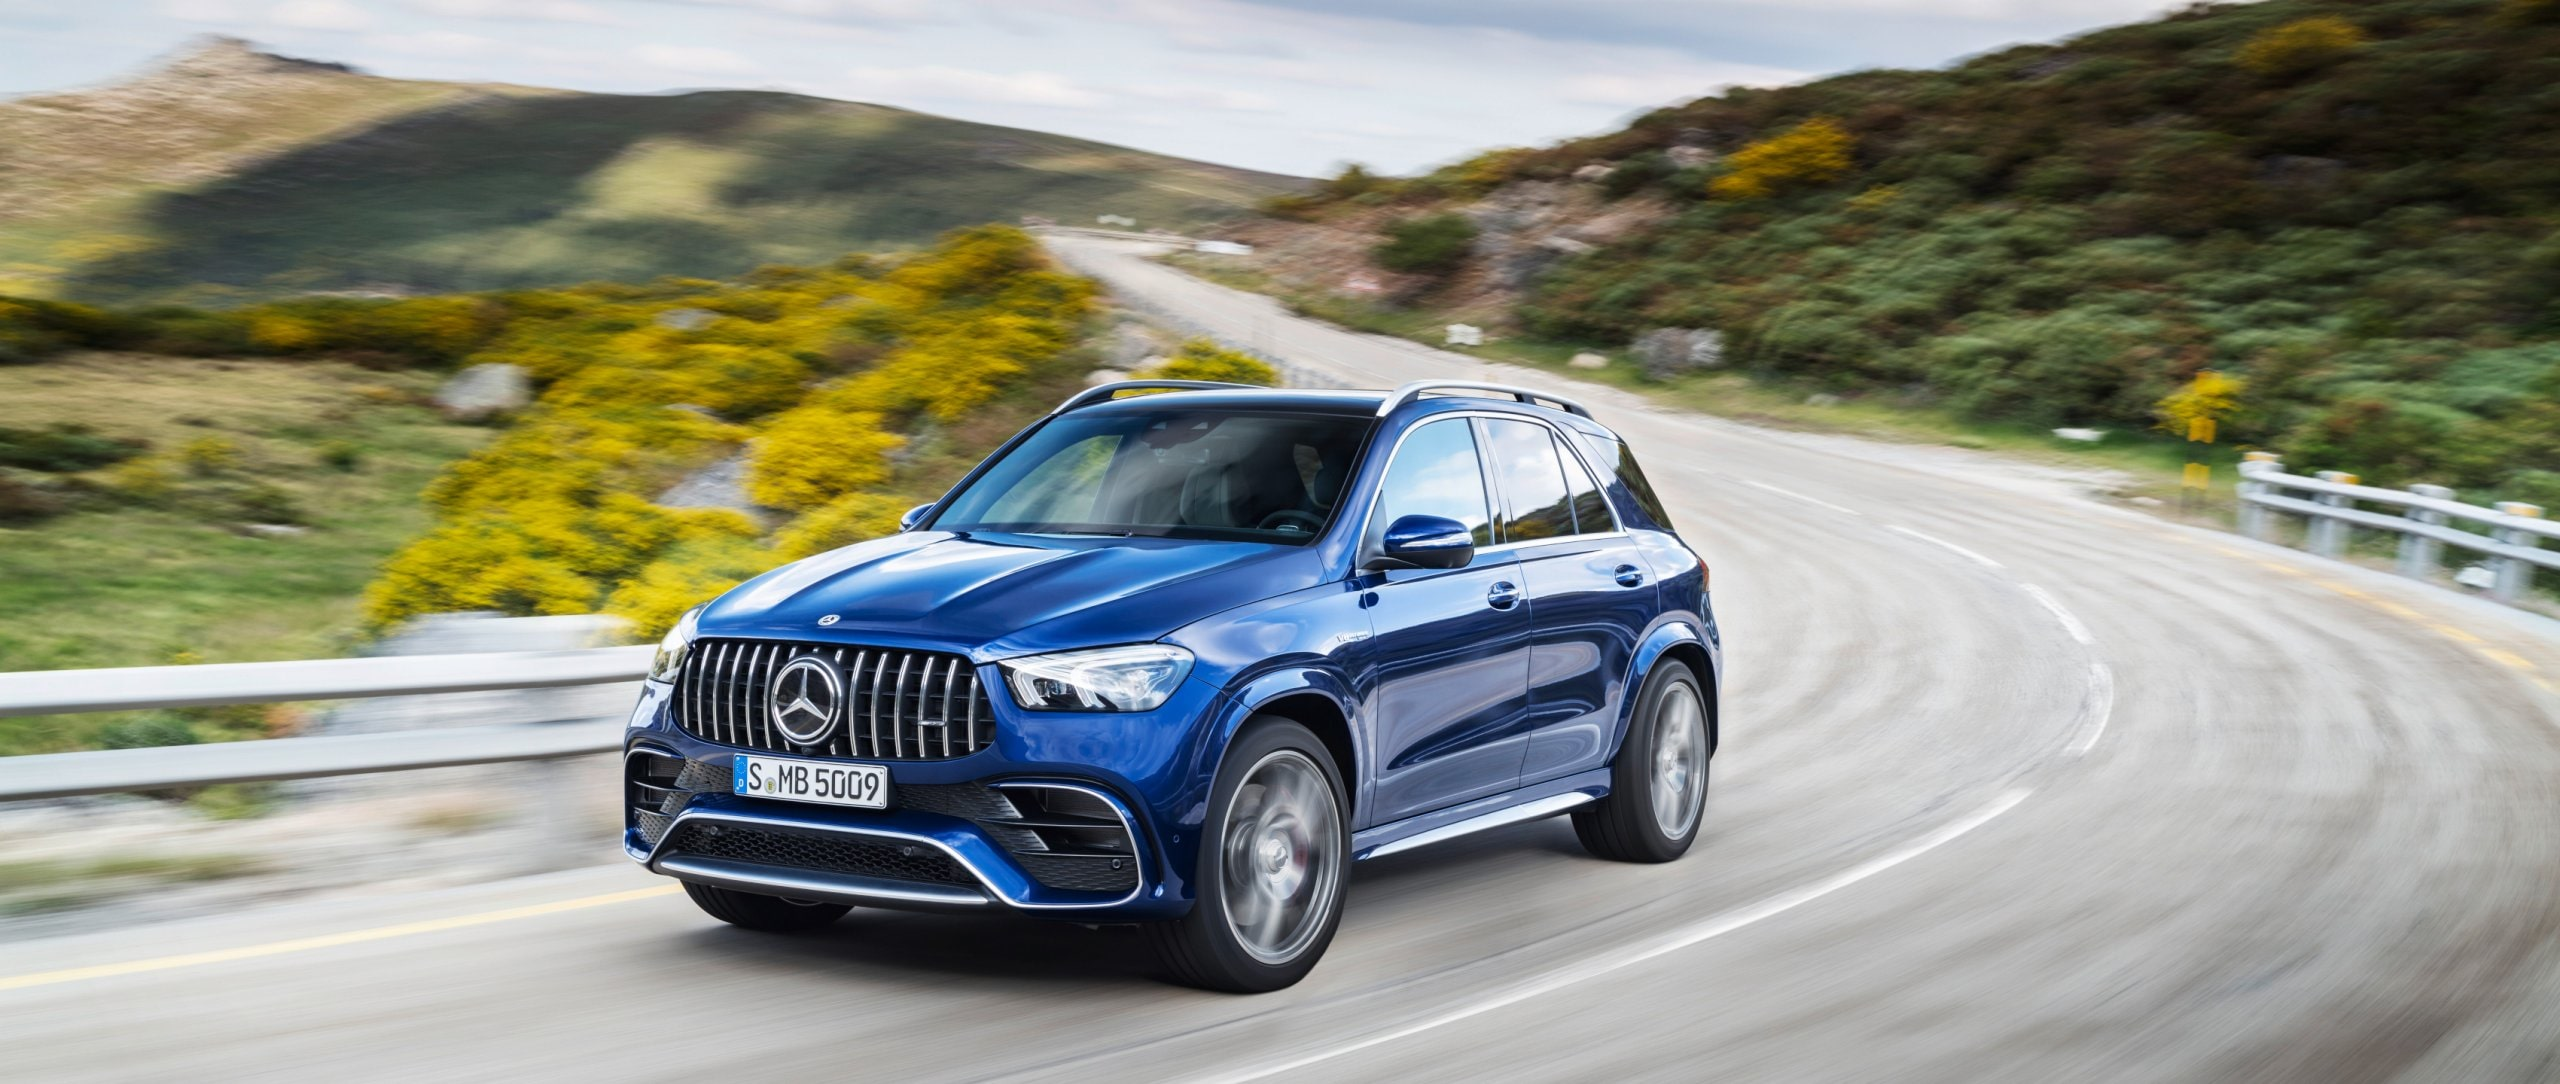 Front view: The new 2020 Mercedes-AMG GLE 63 S 4MATIC+ (W 167) in galaxy blue driving on a country road.